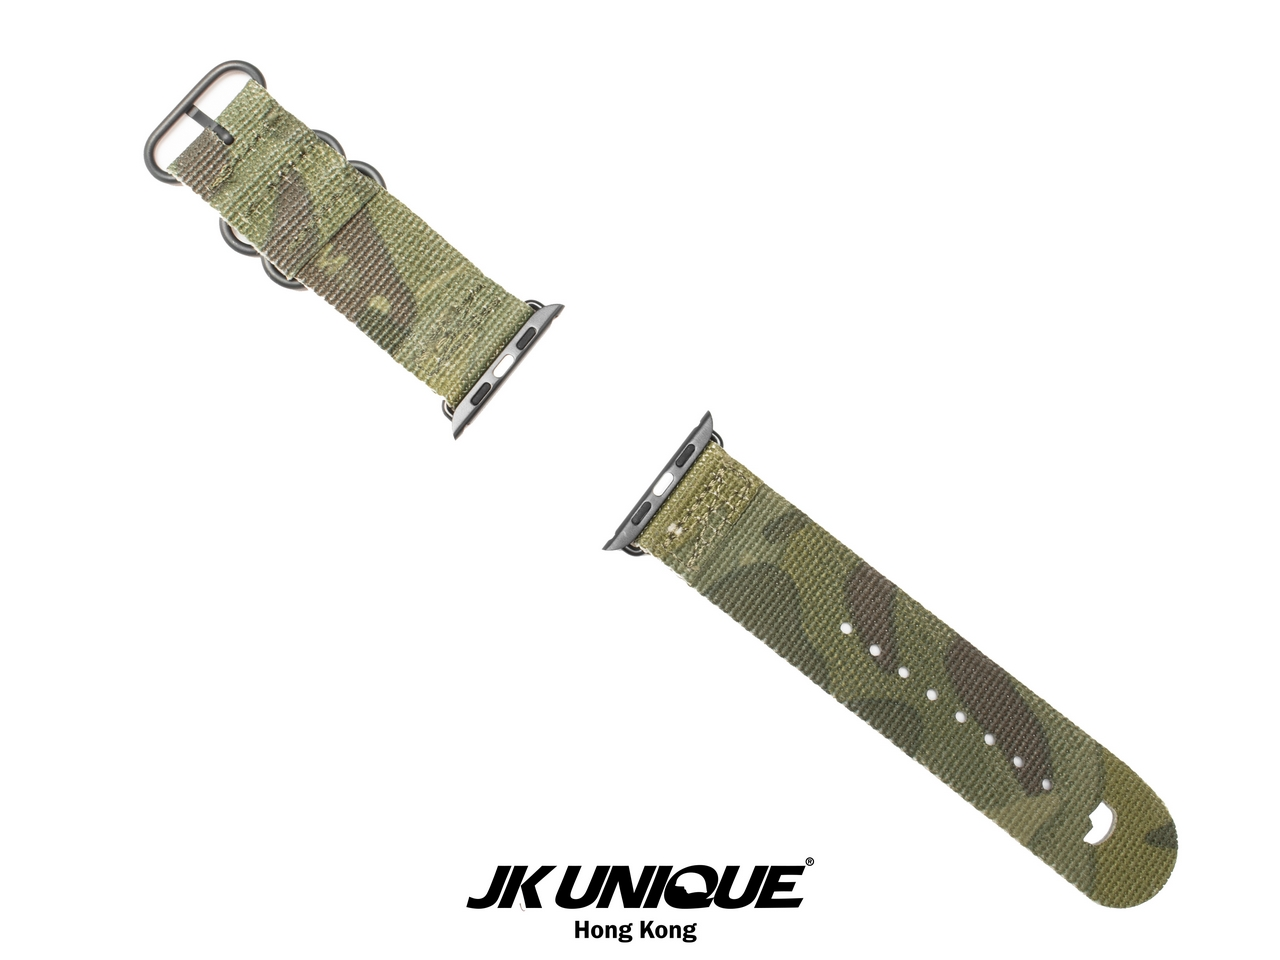 JK-UNIQUE-CAMO-NATO-Apple-Watch-Strap-42mm-BK-Multicam-Tropic-2 (1280).jpg